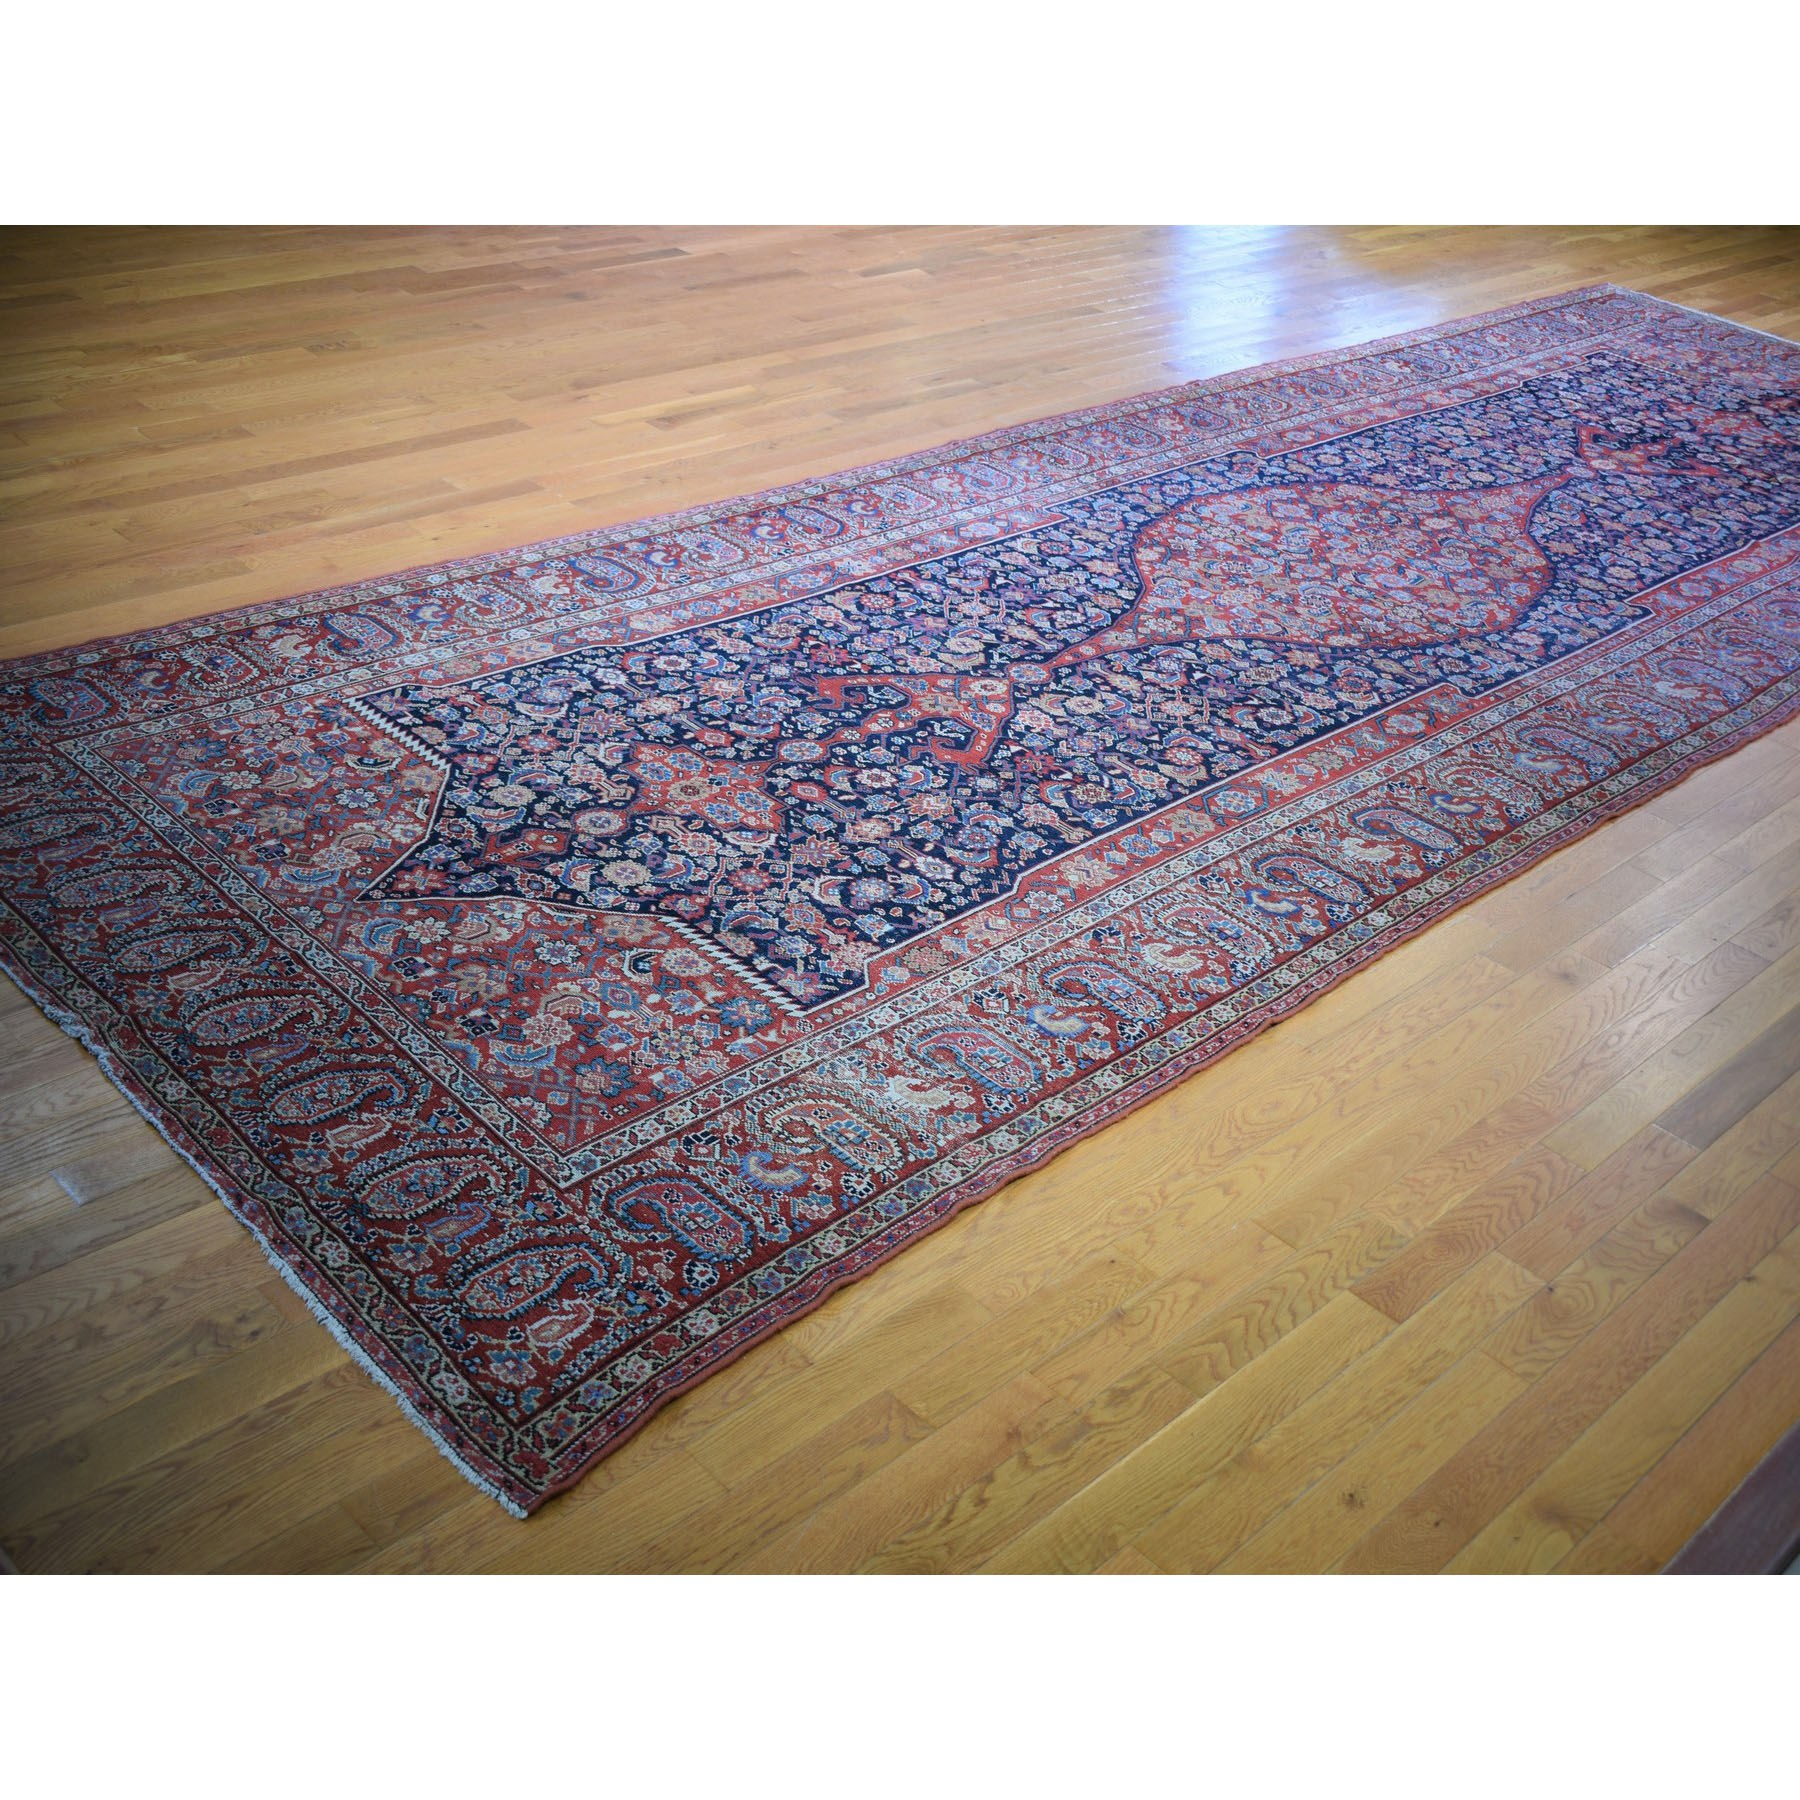 """6'10""""x20'9"""" Gallery Size Antique Persian Malayer Evern Wear Medallion Design Pure Wool Hand Knotted Rug"""